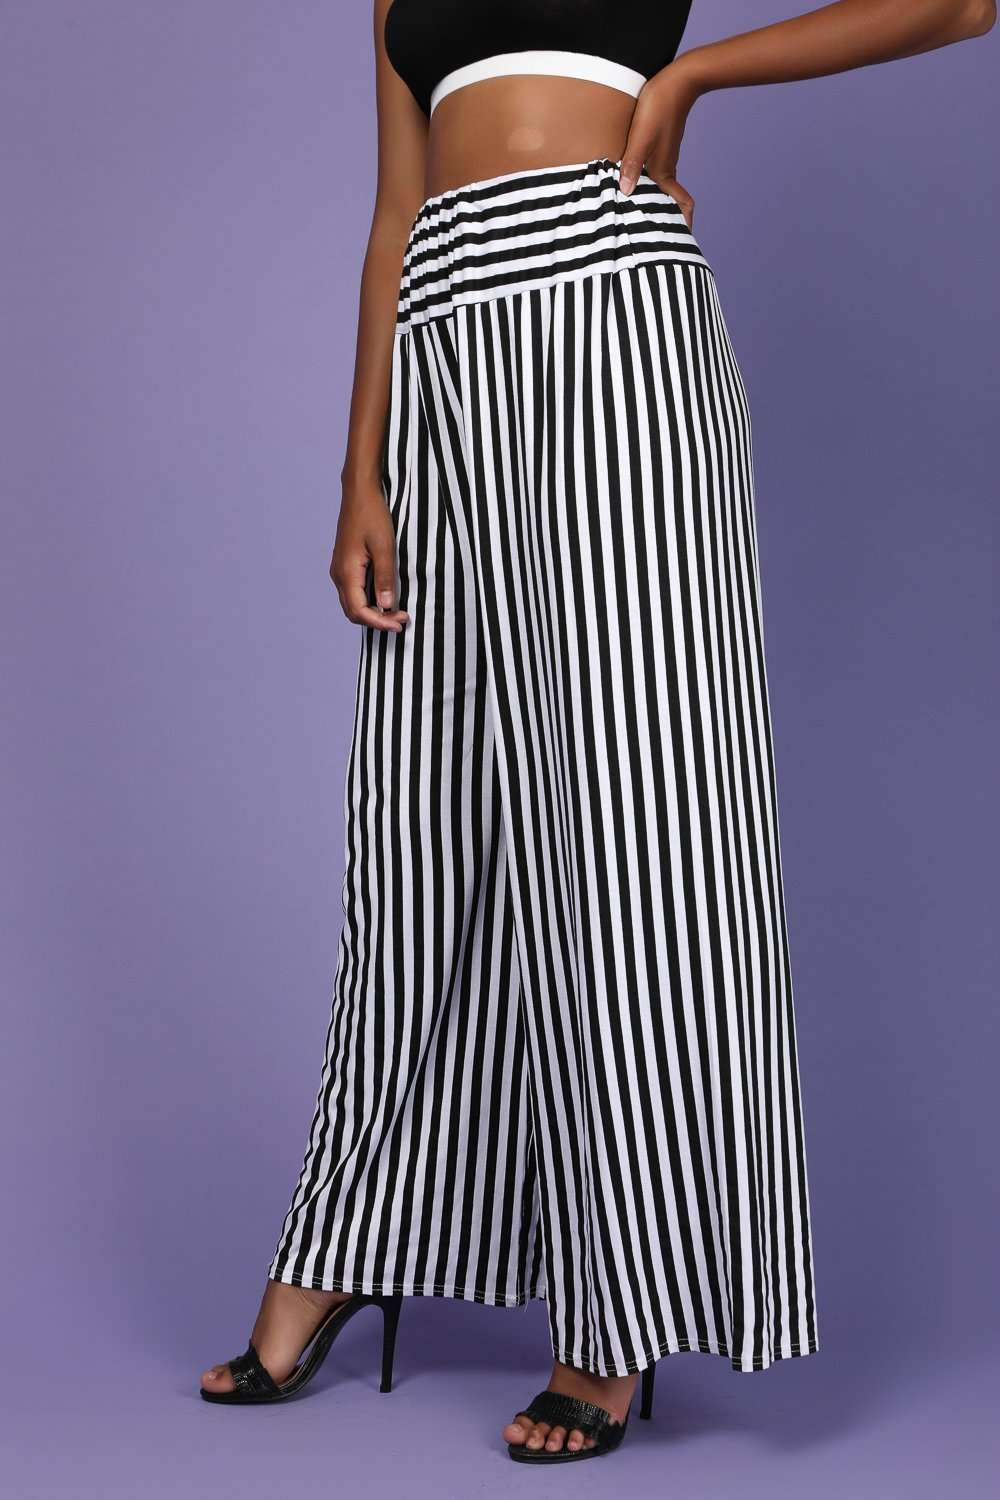 Monochome High Waisted Striped Palazzo Pants - bejealous-com